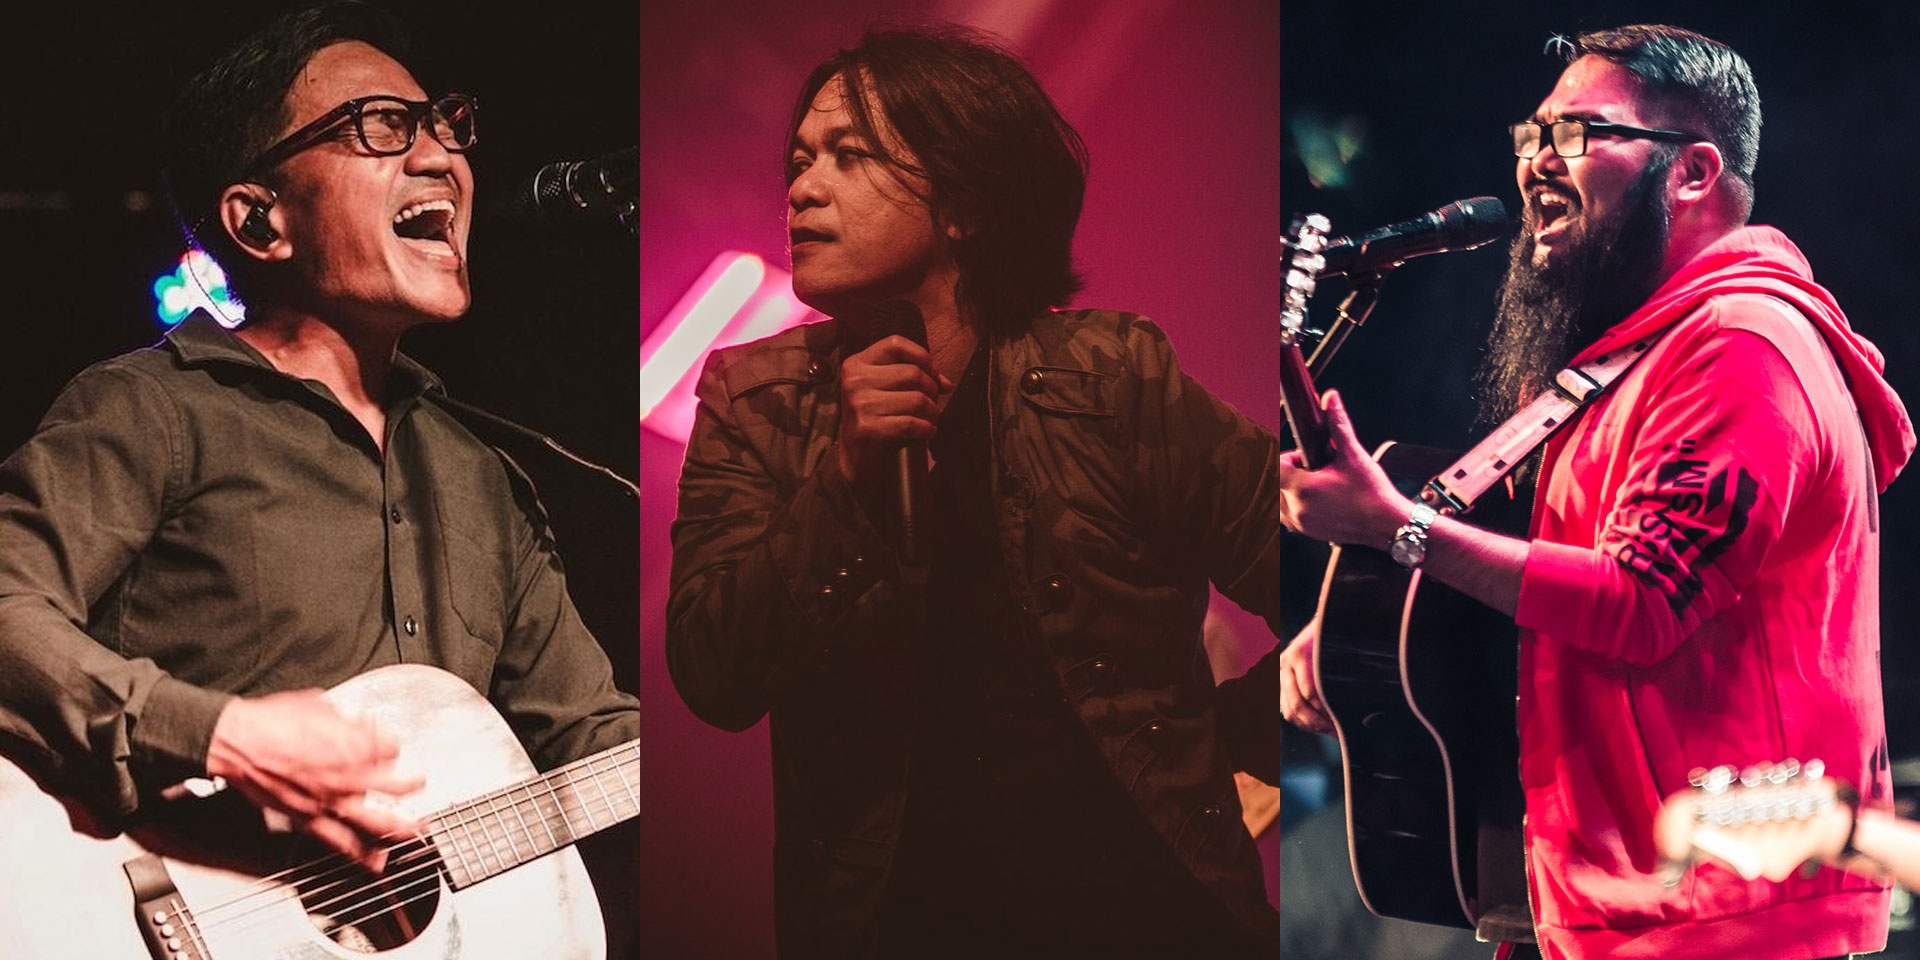 Ebe Dancel, Sandwich, I Belong to the Zoo, and more to share the stage and some burgers this August